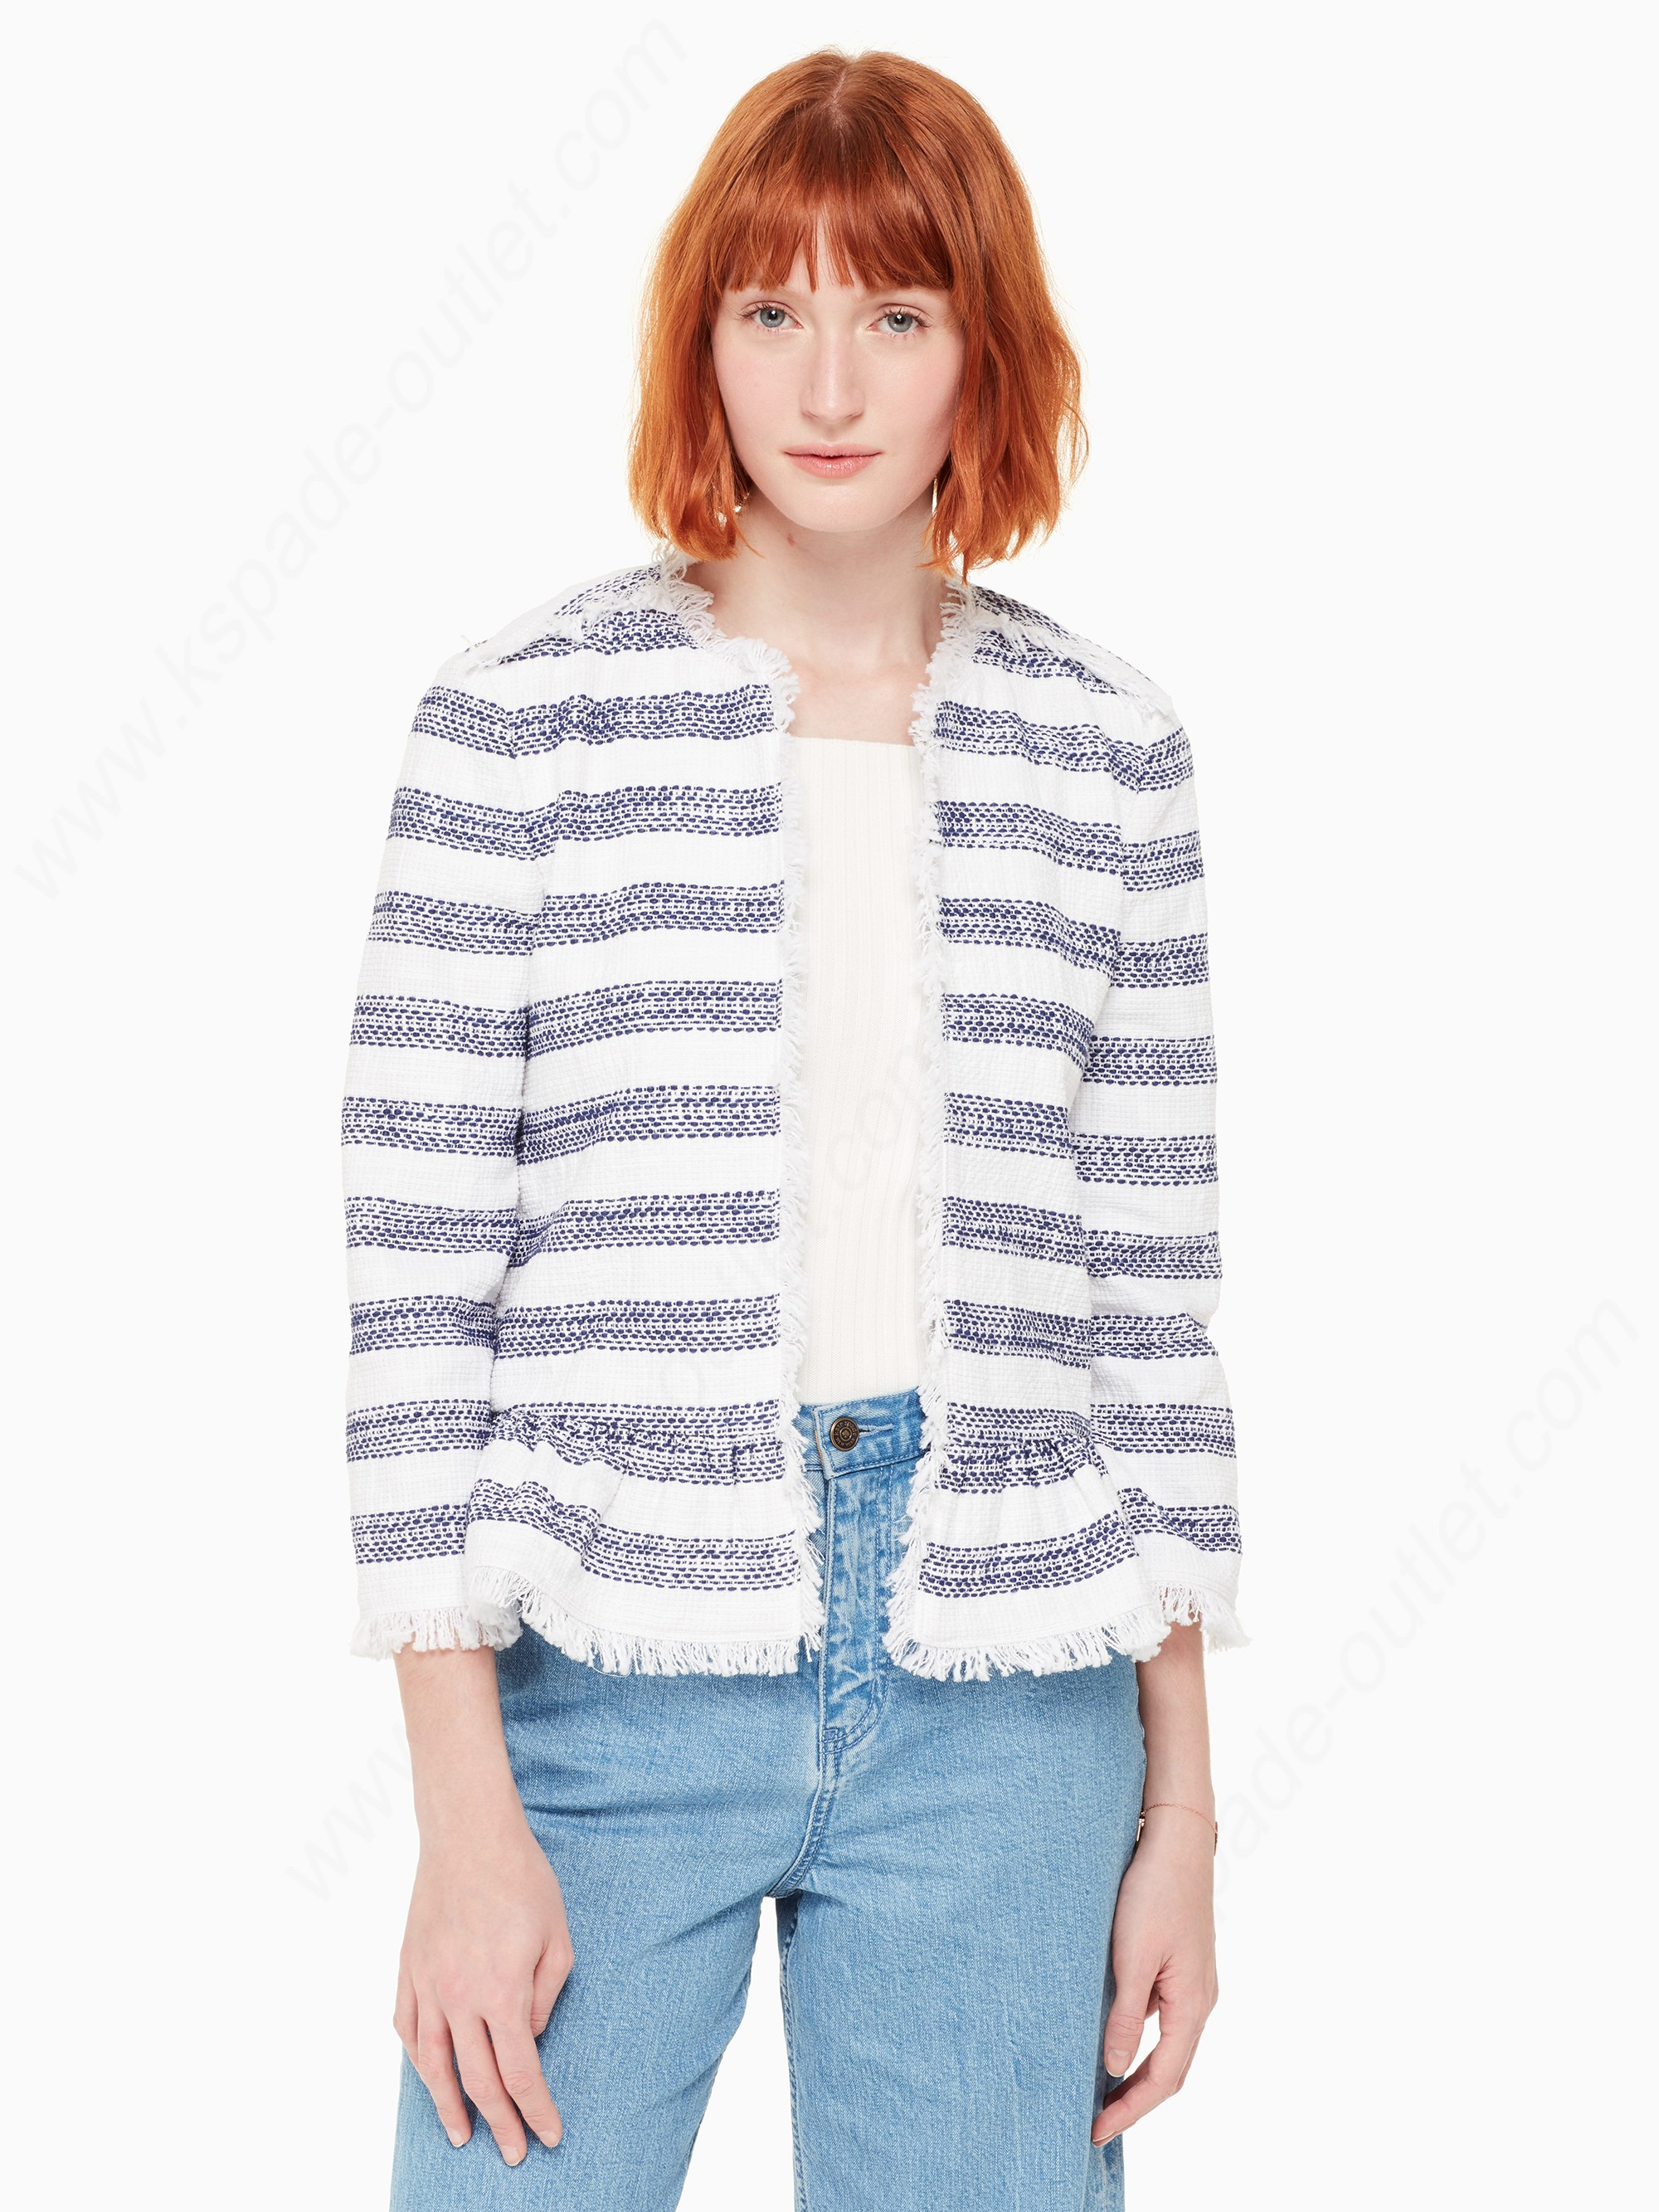 Kate Spade Woman Clothing Stripe Tweed Coats - Kate Spade Woman Clothing Stripe Tweed Coats